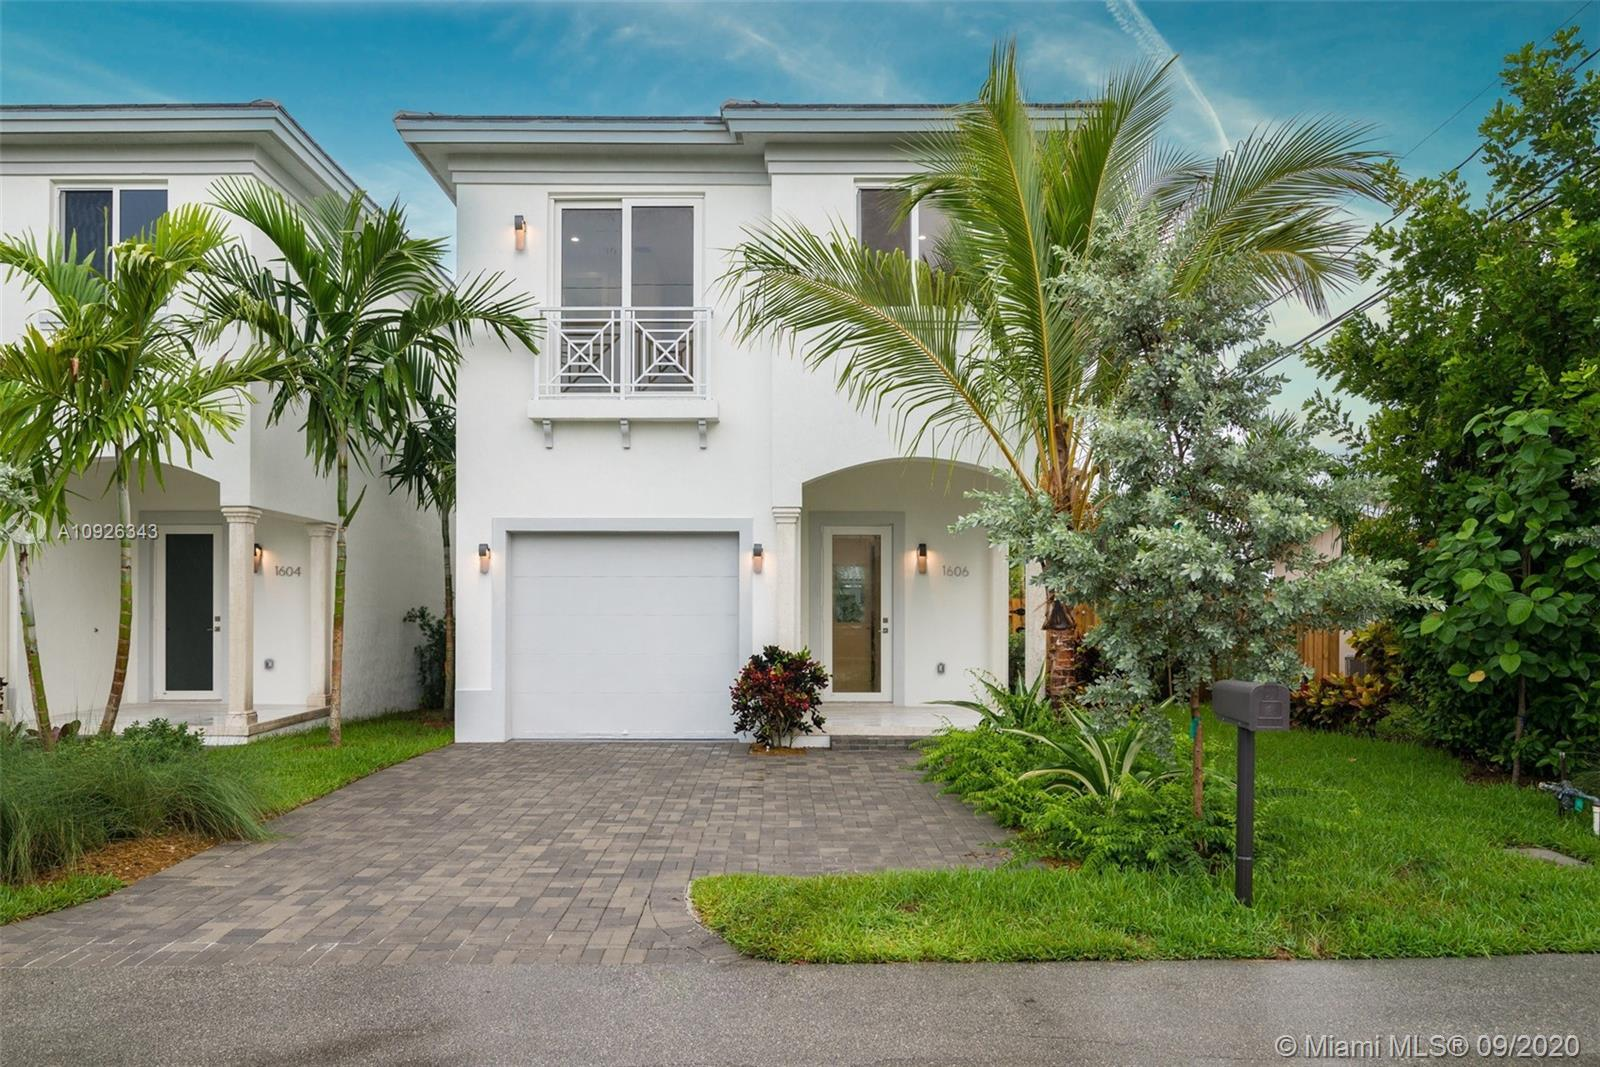 2020 New Construction East Hollywood Pool Home! Features 1,884 sqft Liv Area, 4 bedroom 3.5 bathroom